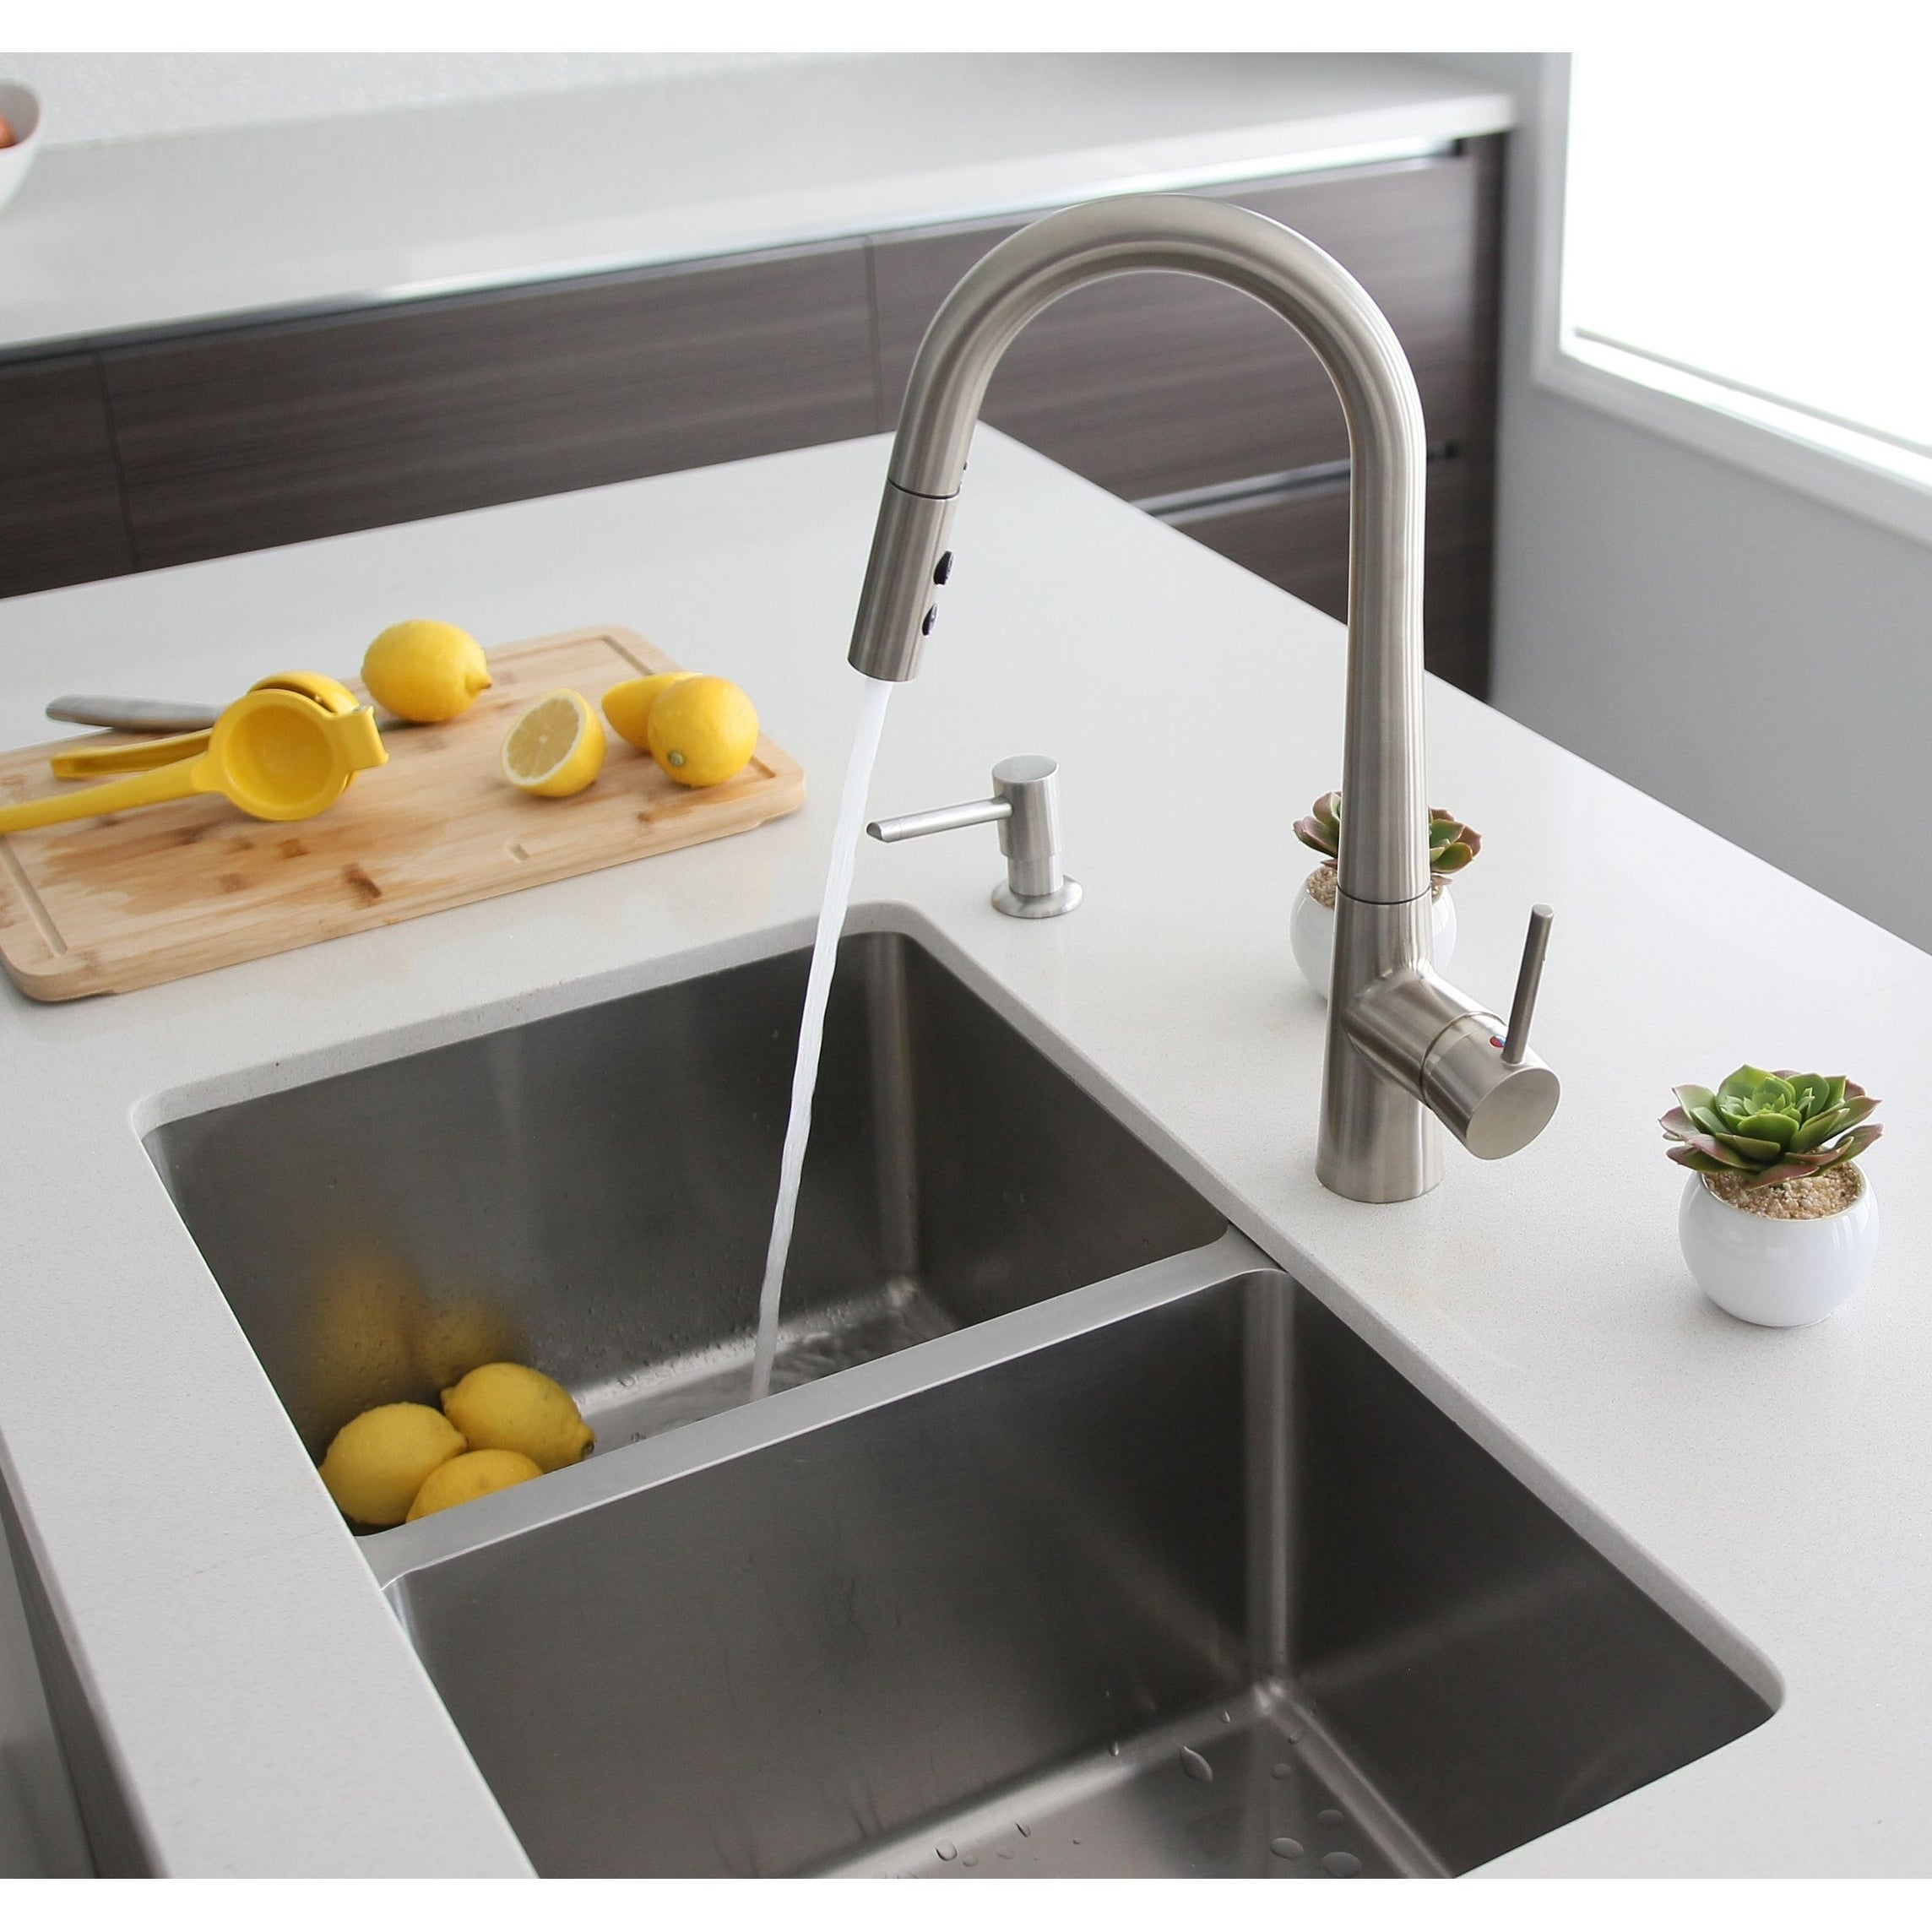 31L x 18W Double Basin Undermount Kitchen Sink with Strainers - Silver - 31 x 18 x 9 (Includes Hardware - Undermount - 16)